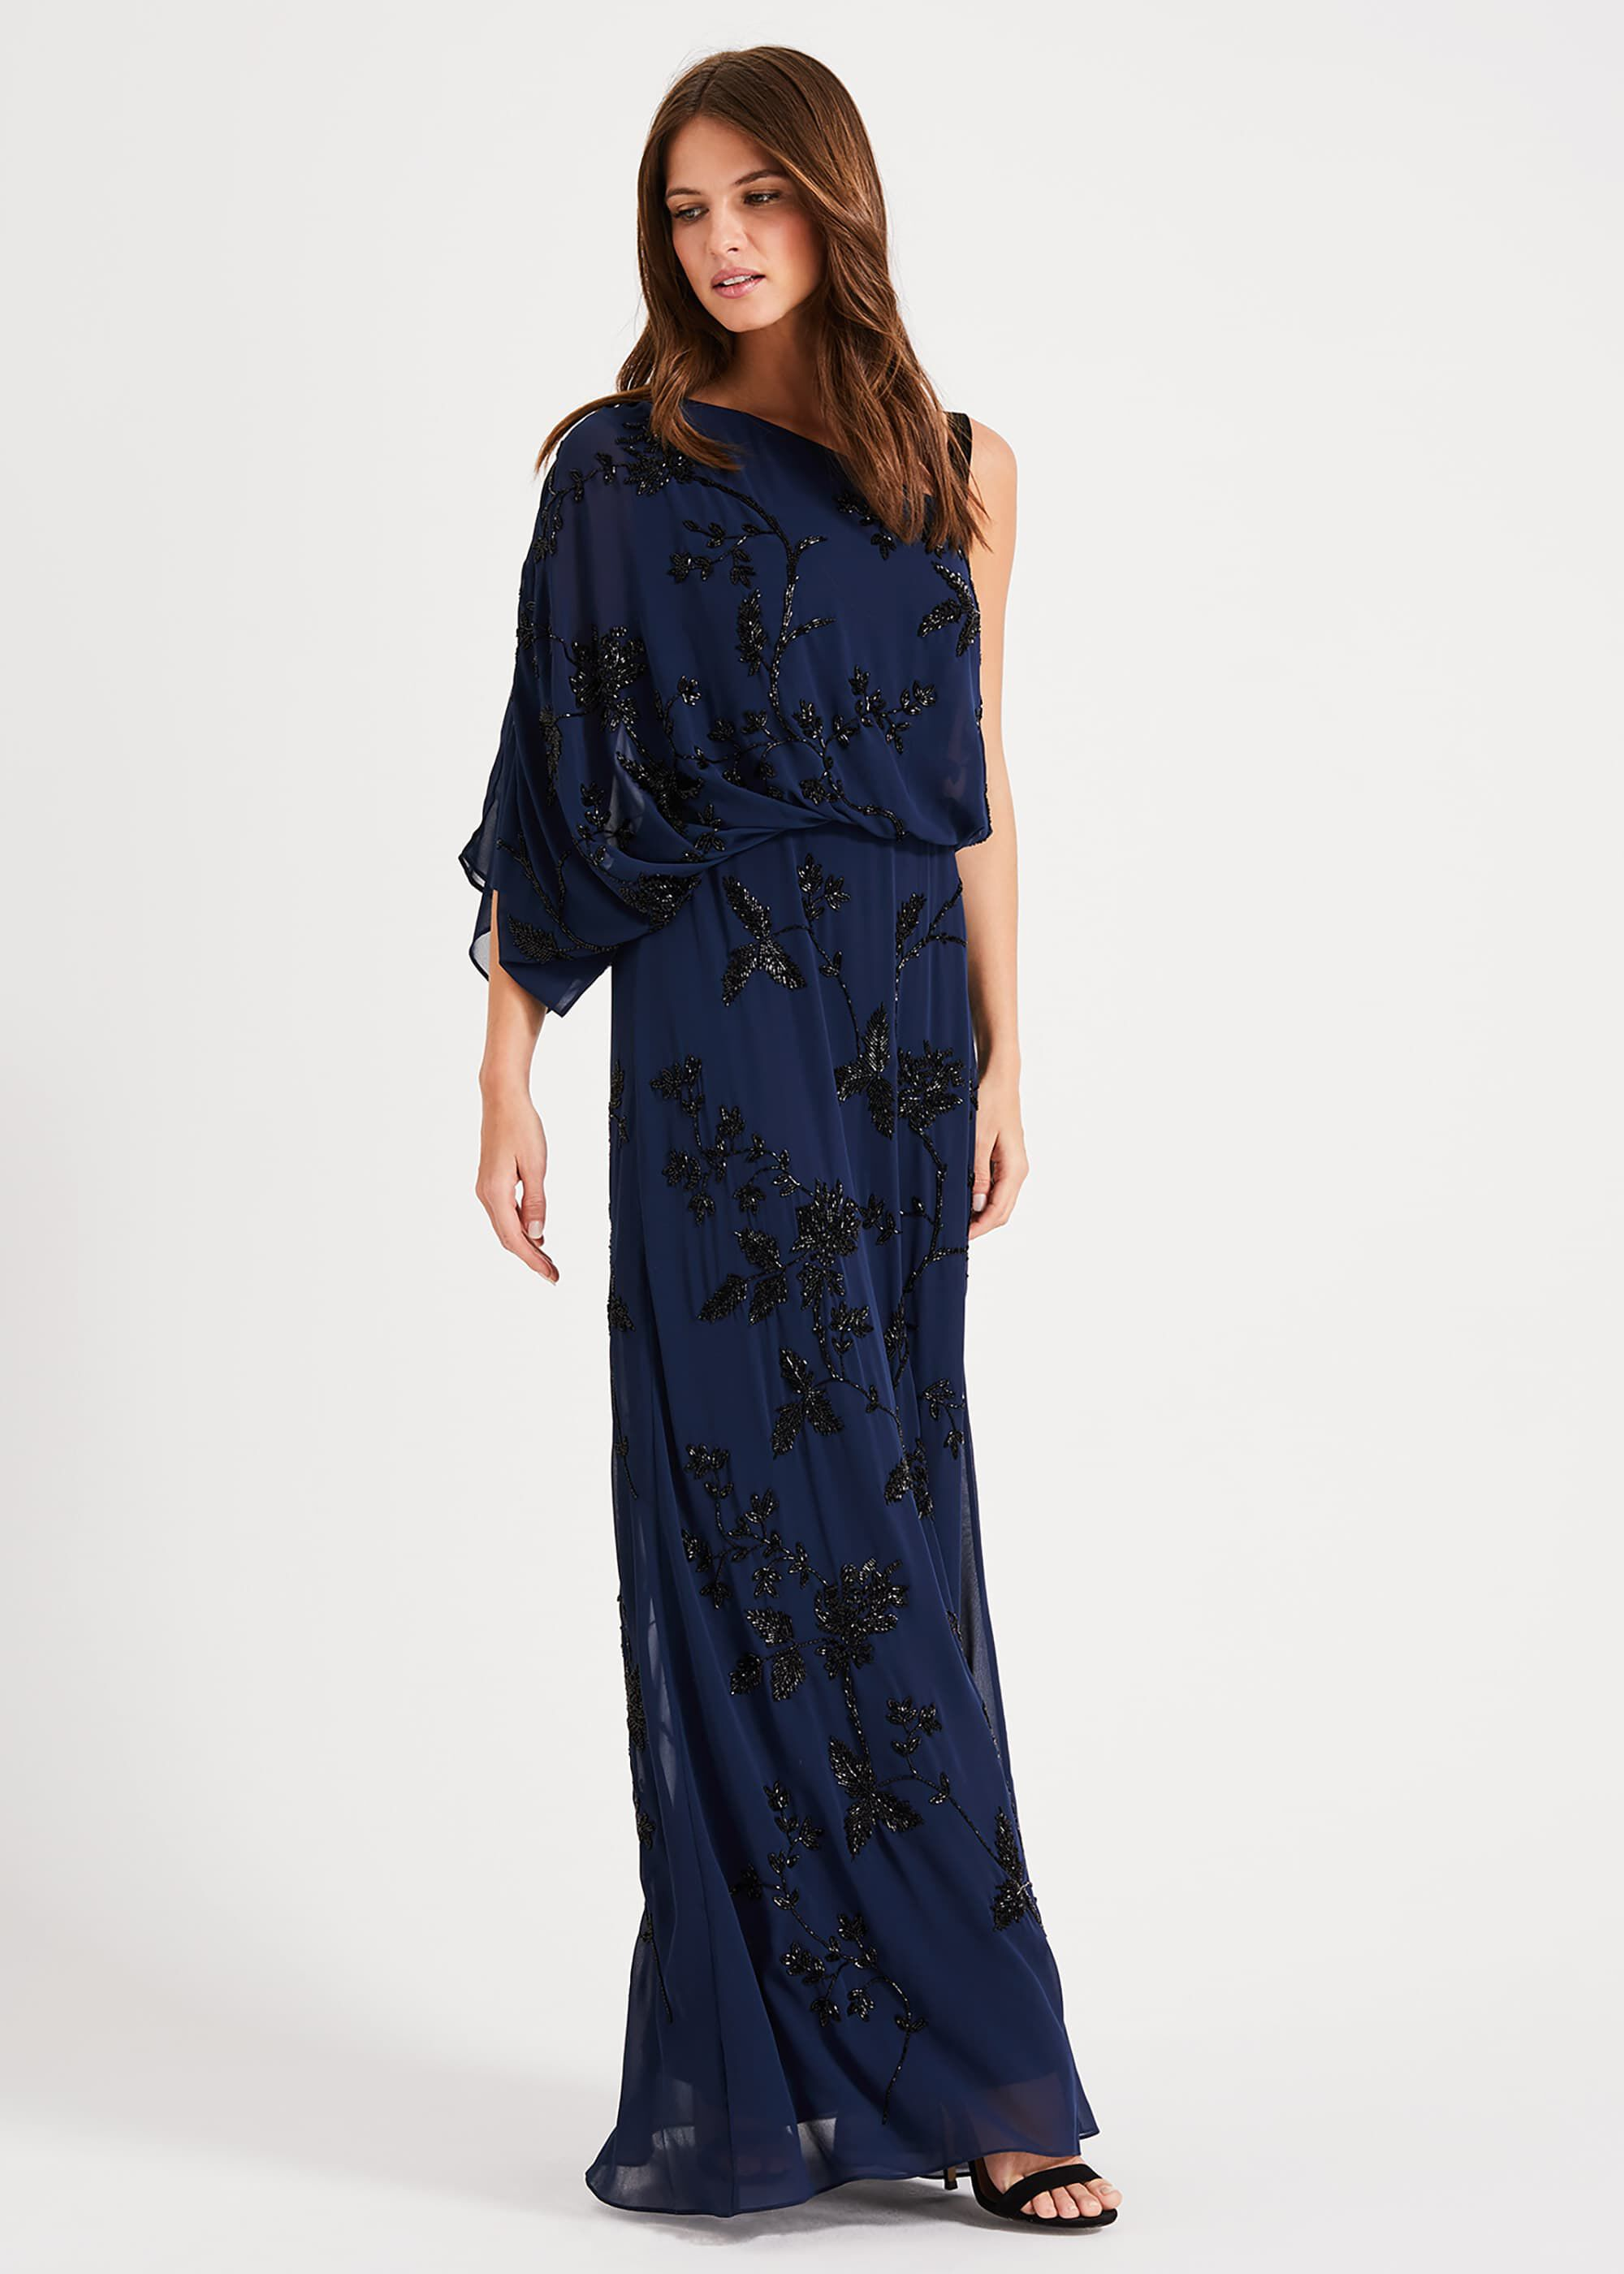 Phase Eight Shirley Embellished Maxi Dress, Blue, Maxi